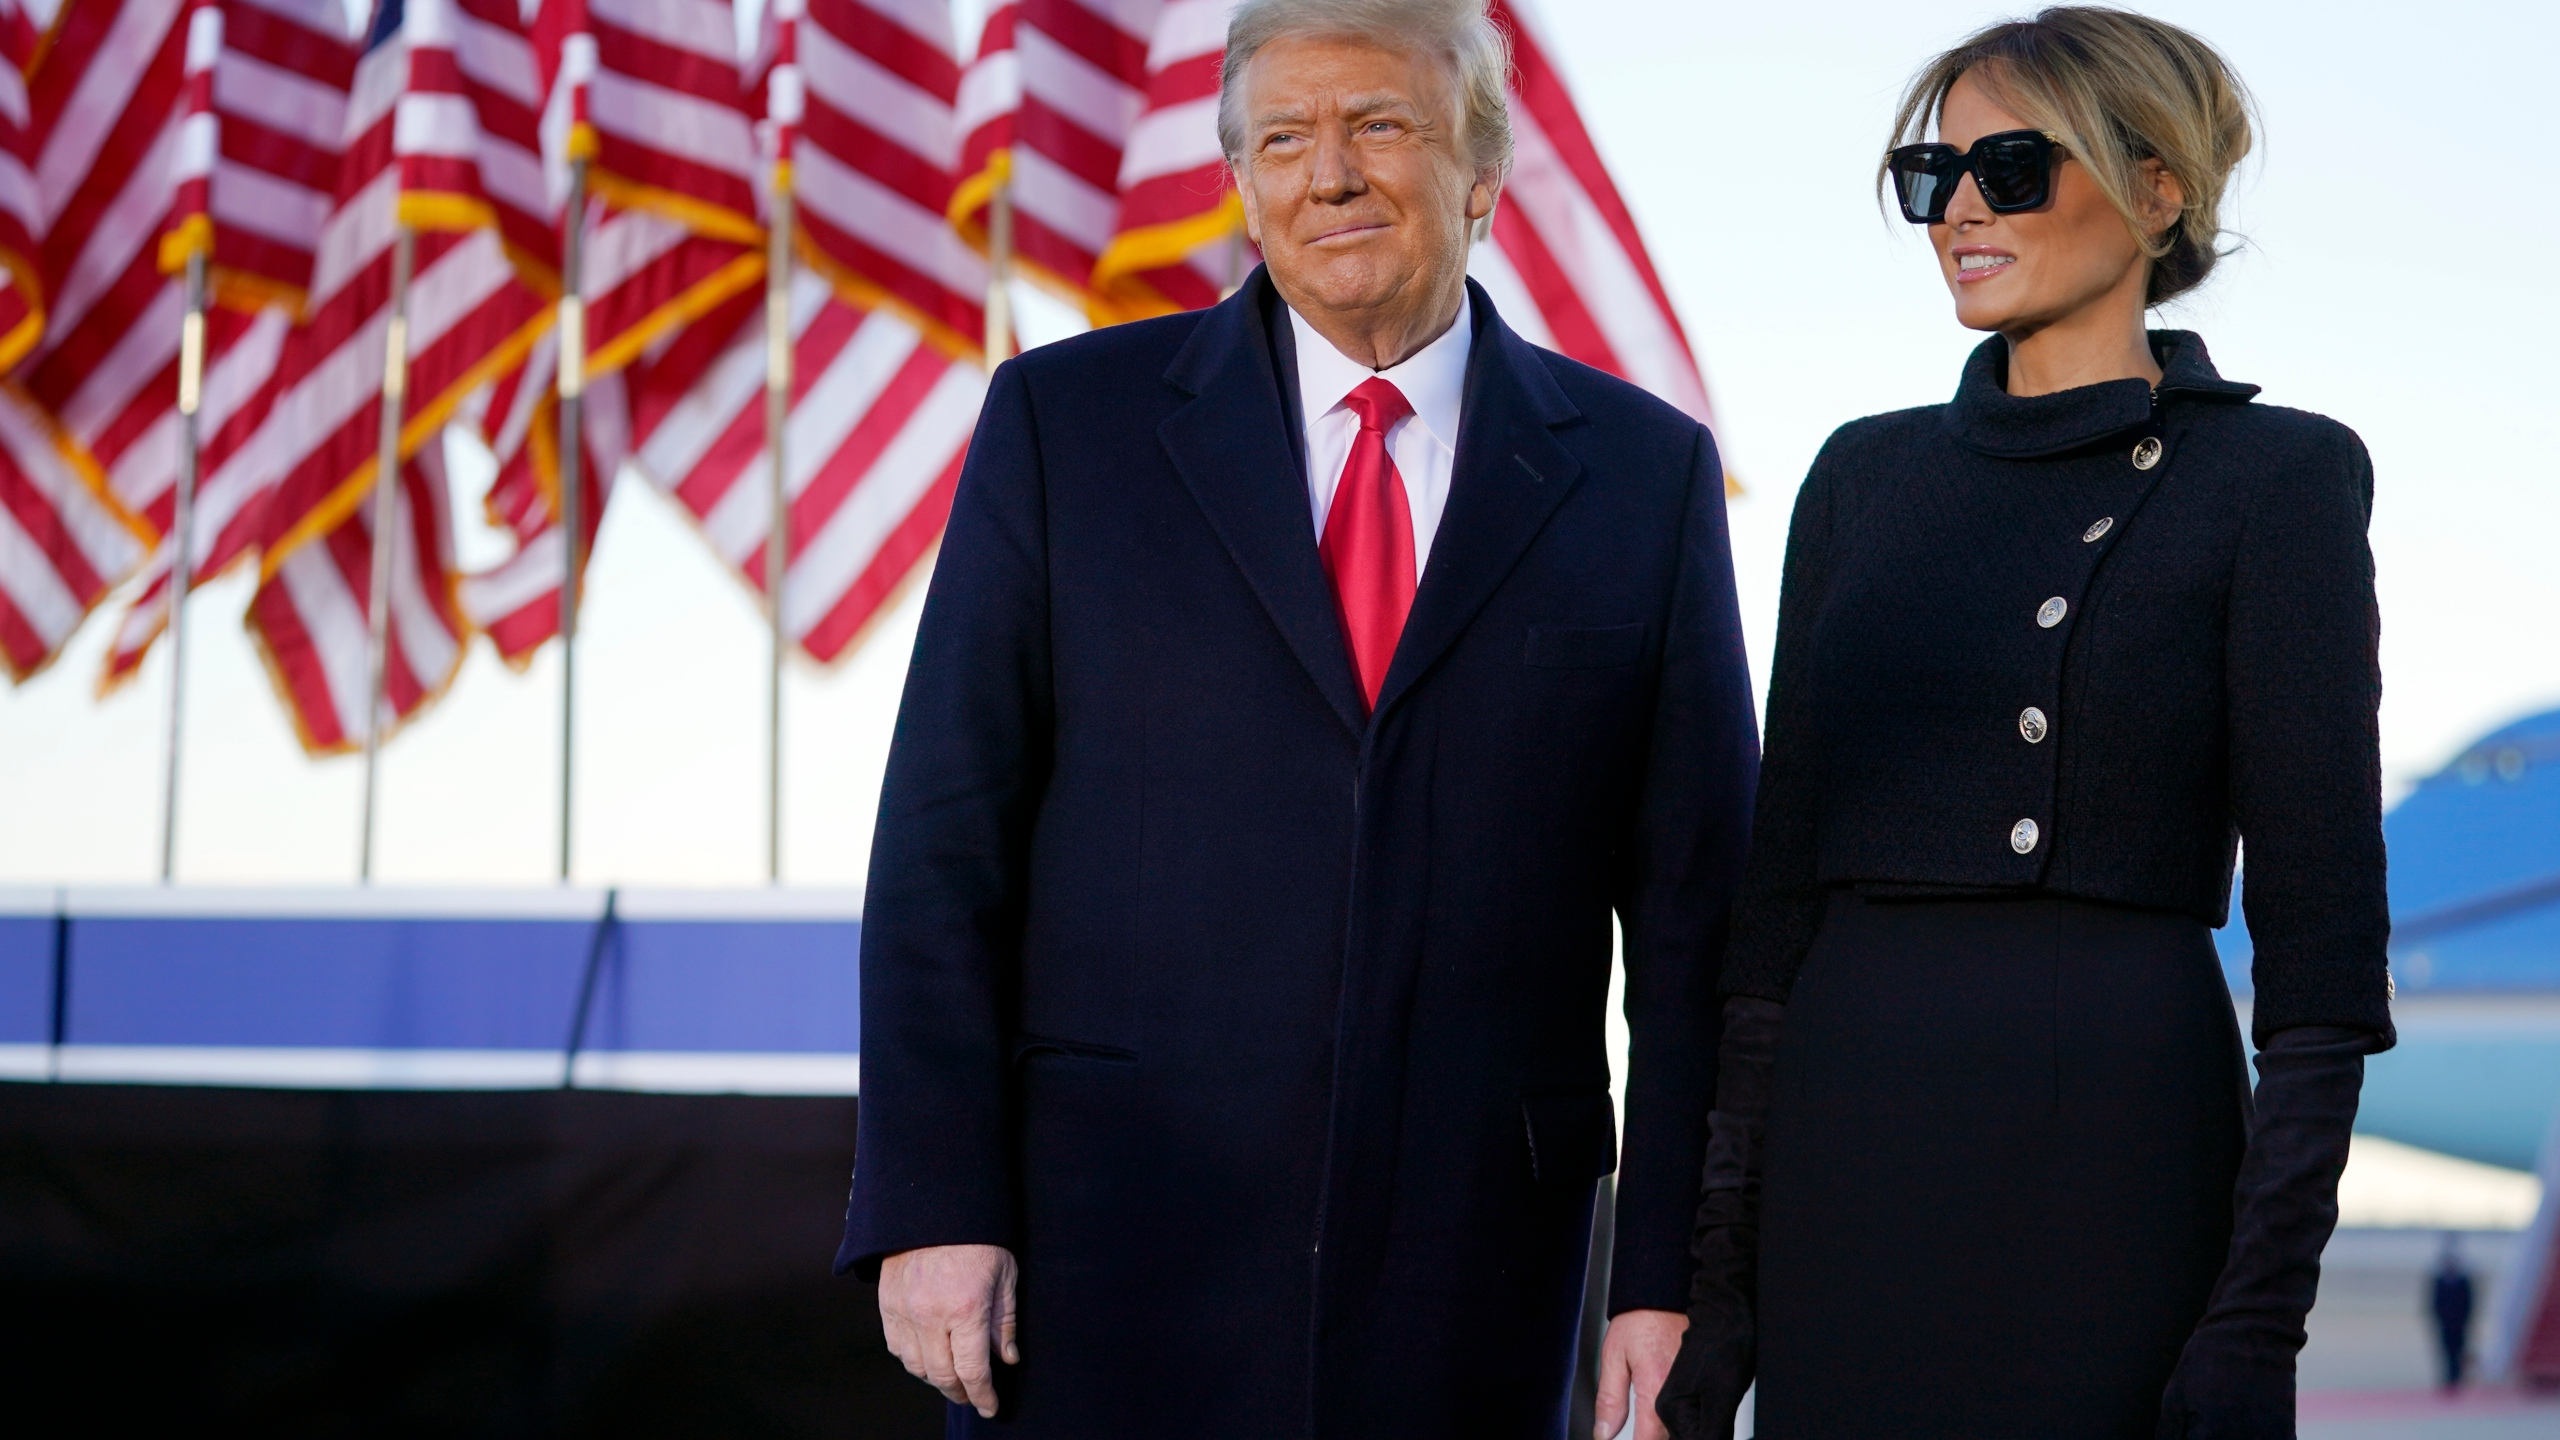 President Donald Trump and first lady Melania Trump look at supporters before boarding Air Force One at Andrews Air Force Base on Jan. 20, 2021.(Manuel Balce Ceneta/Associated Press)